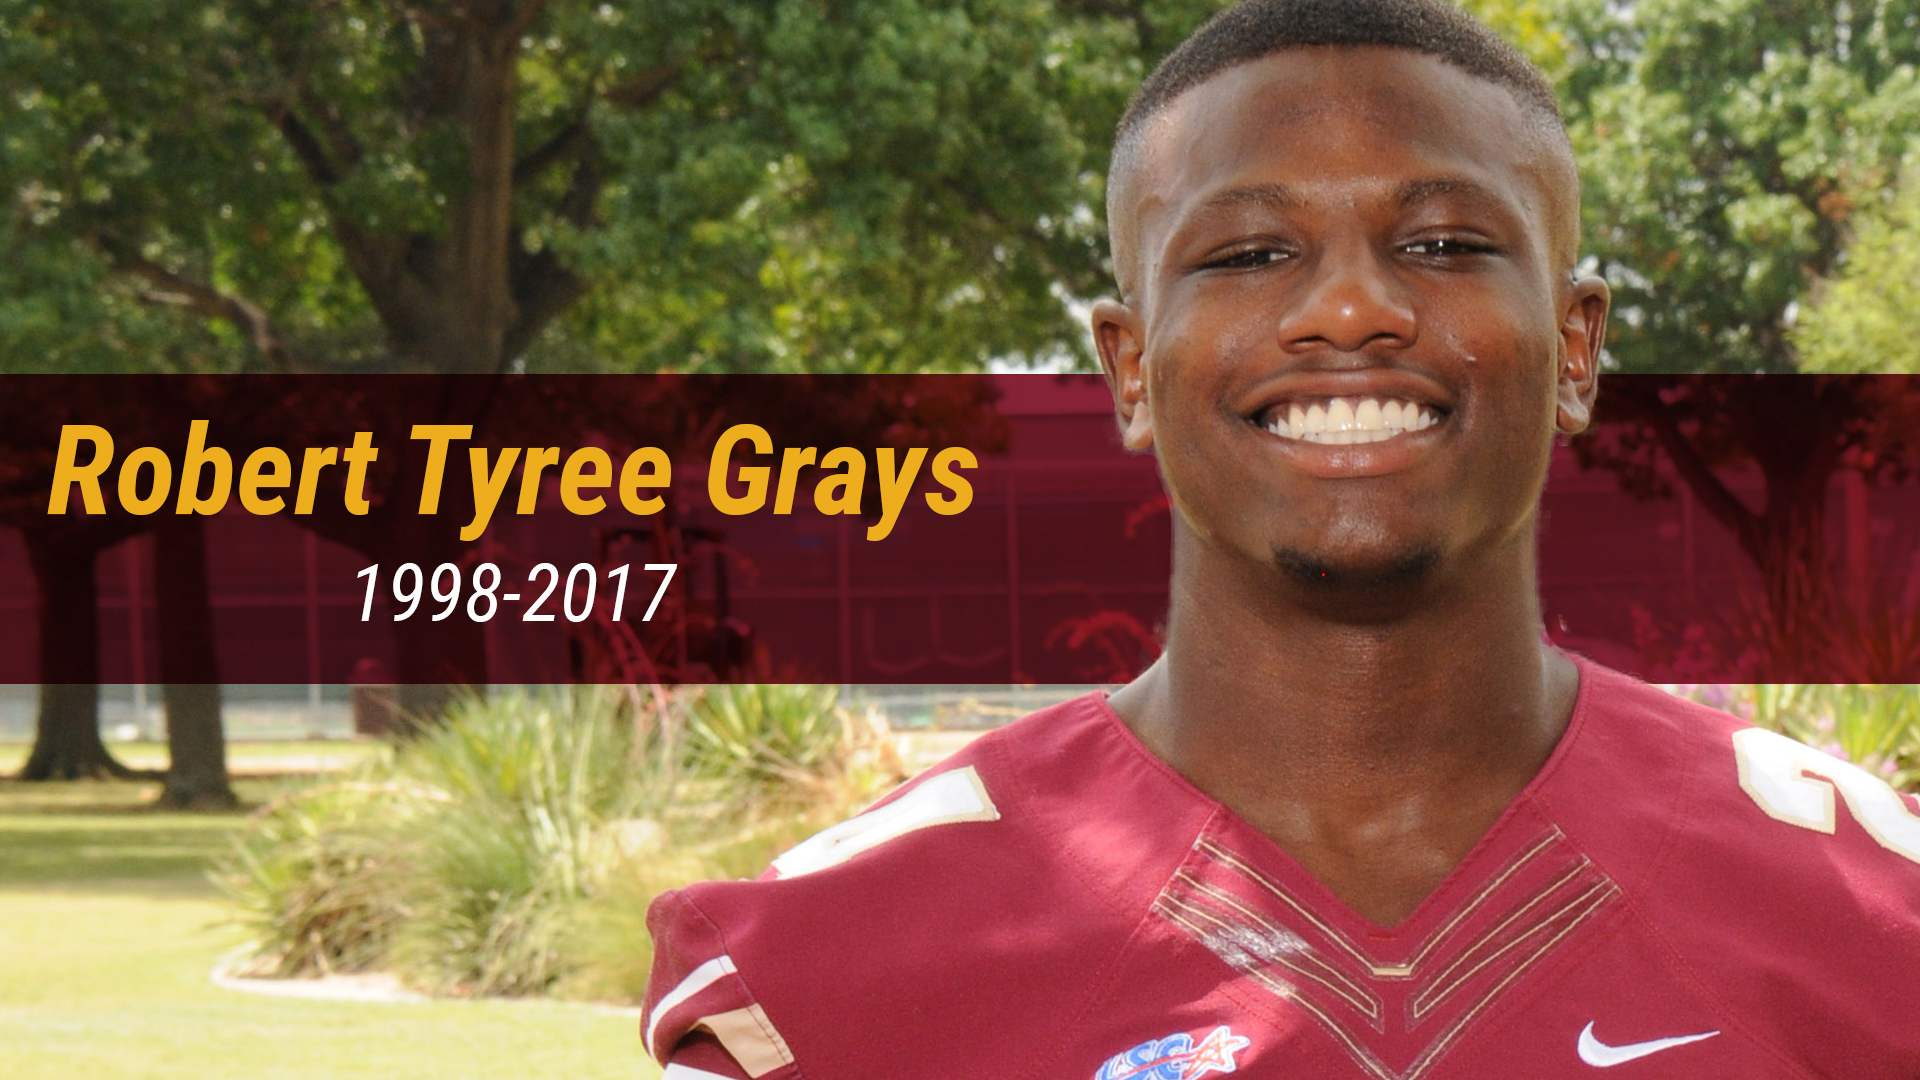 Two college football players die after games last weekend